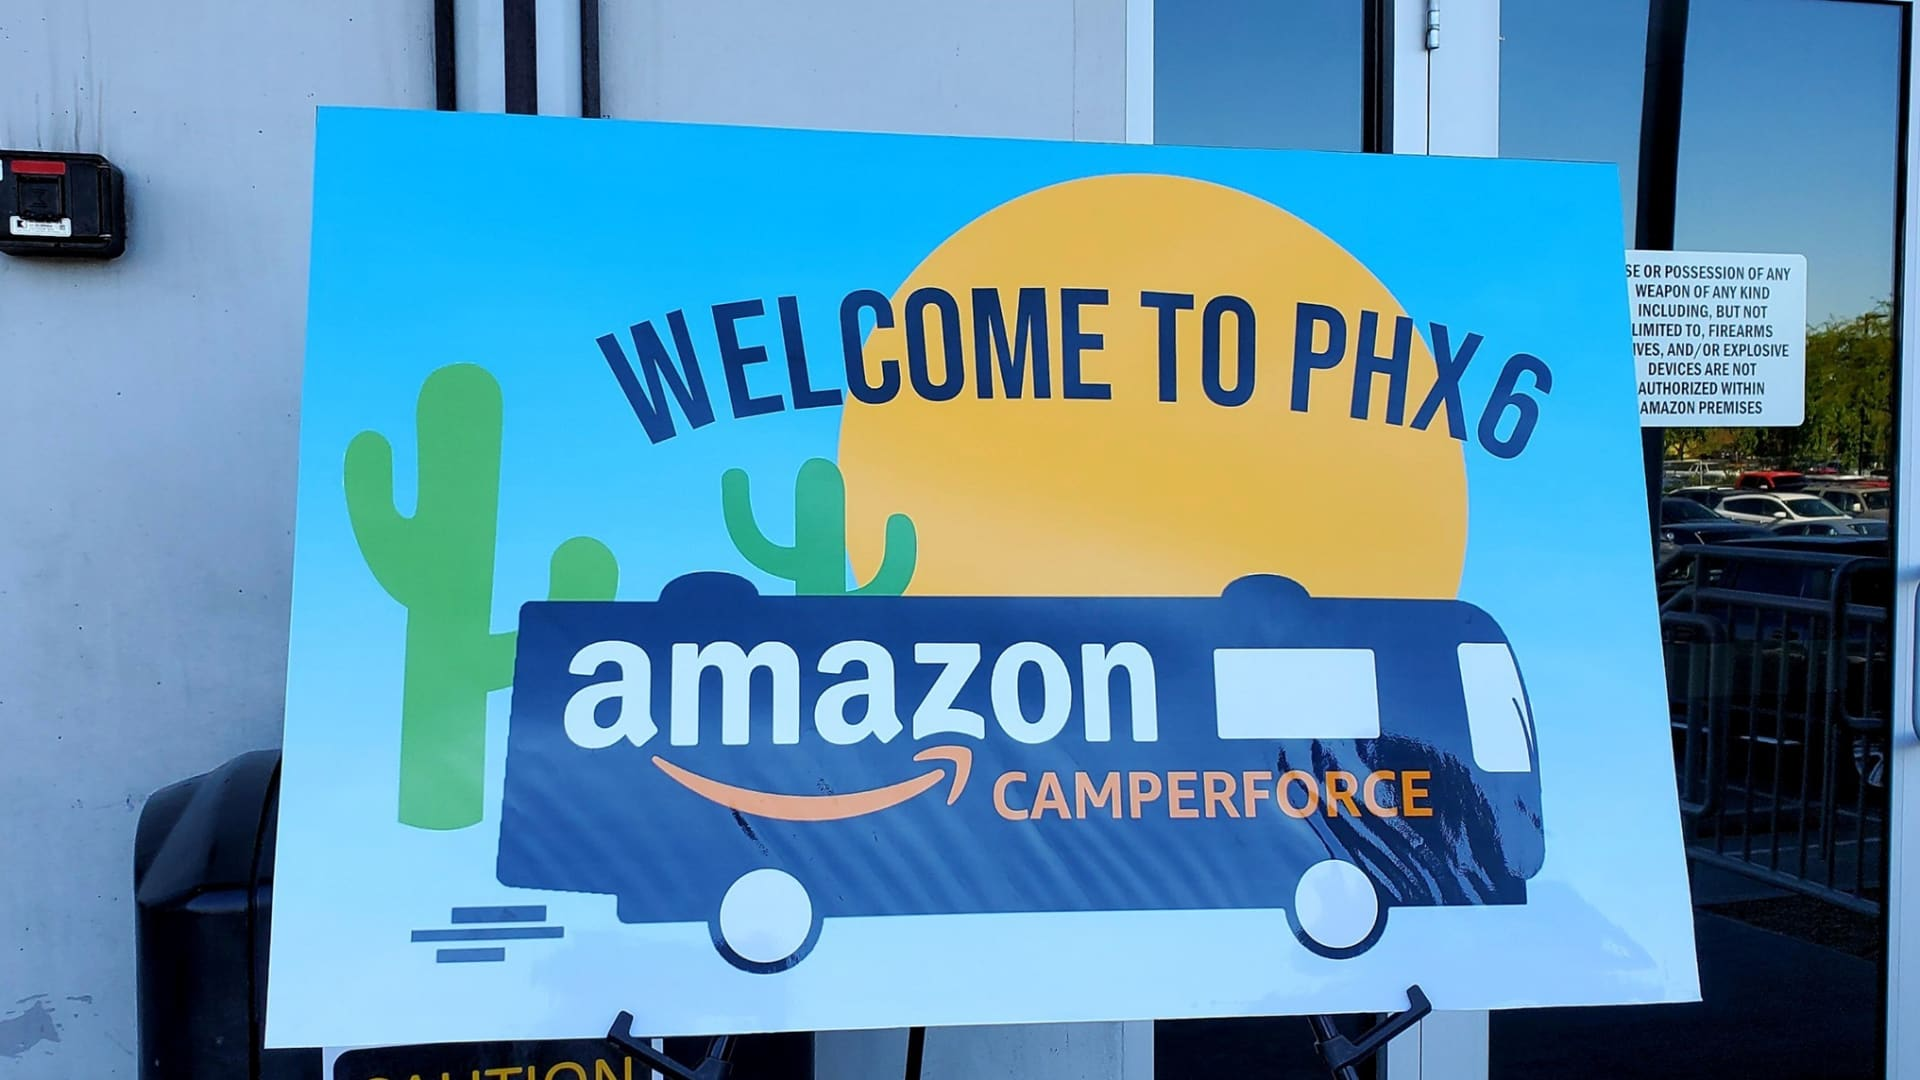 Amazon CamperForce, launched in 2008, recruits RVers and vandwellers from all corners of the country to work for months at a time during the peak holiday shopping season.